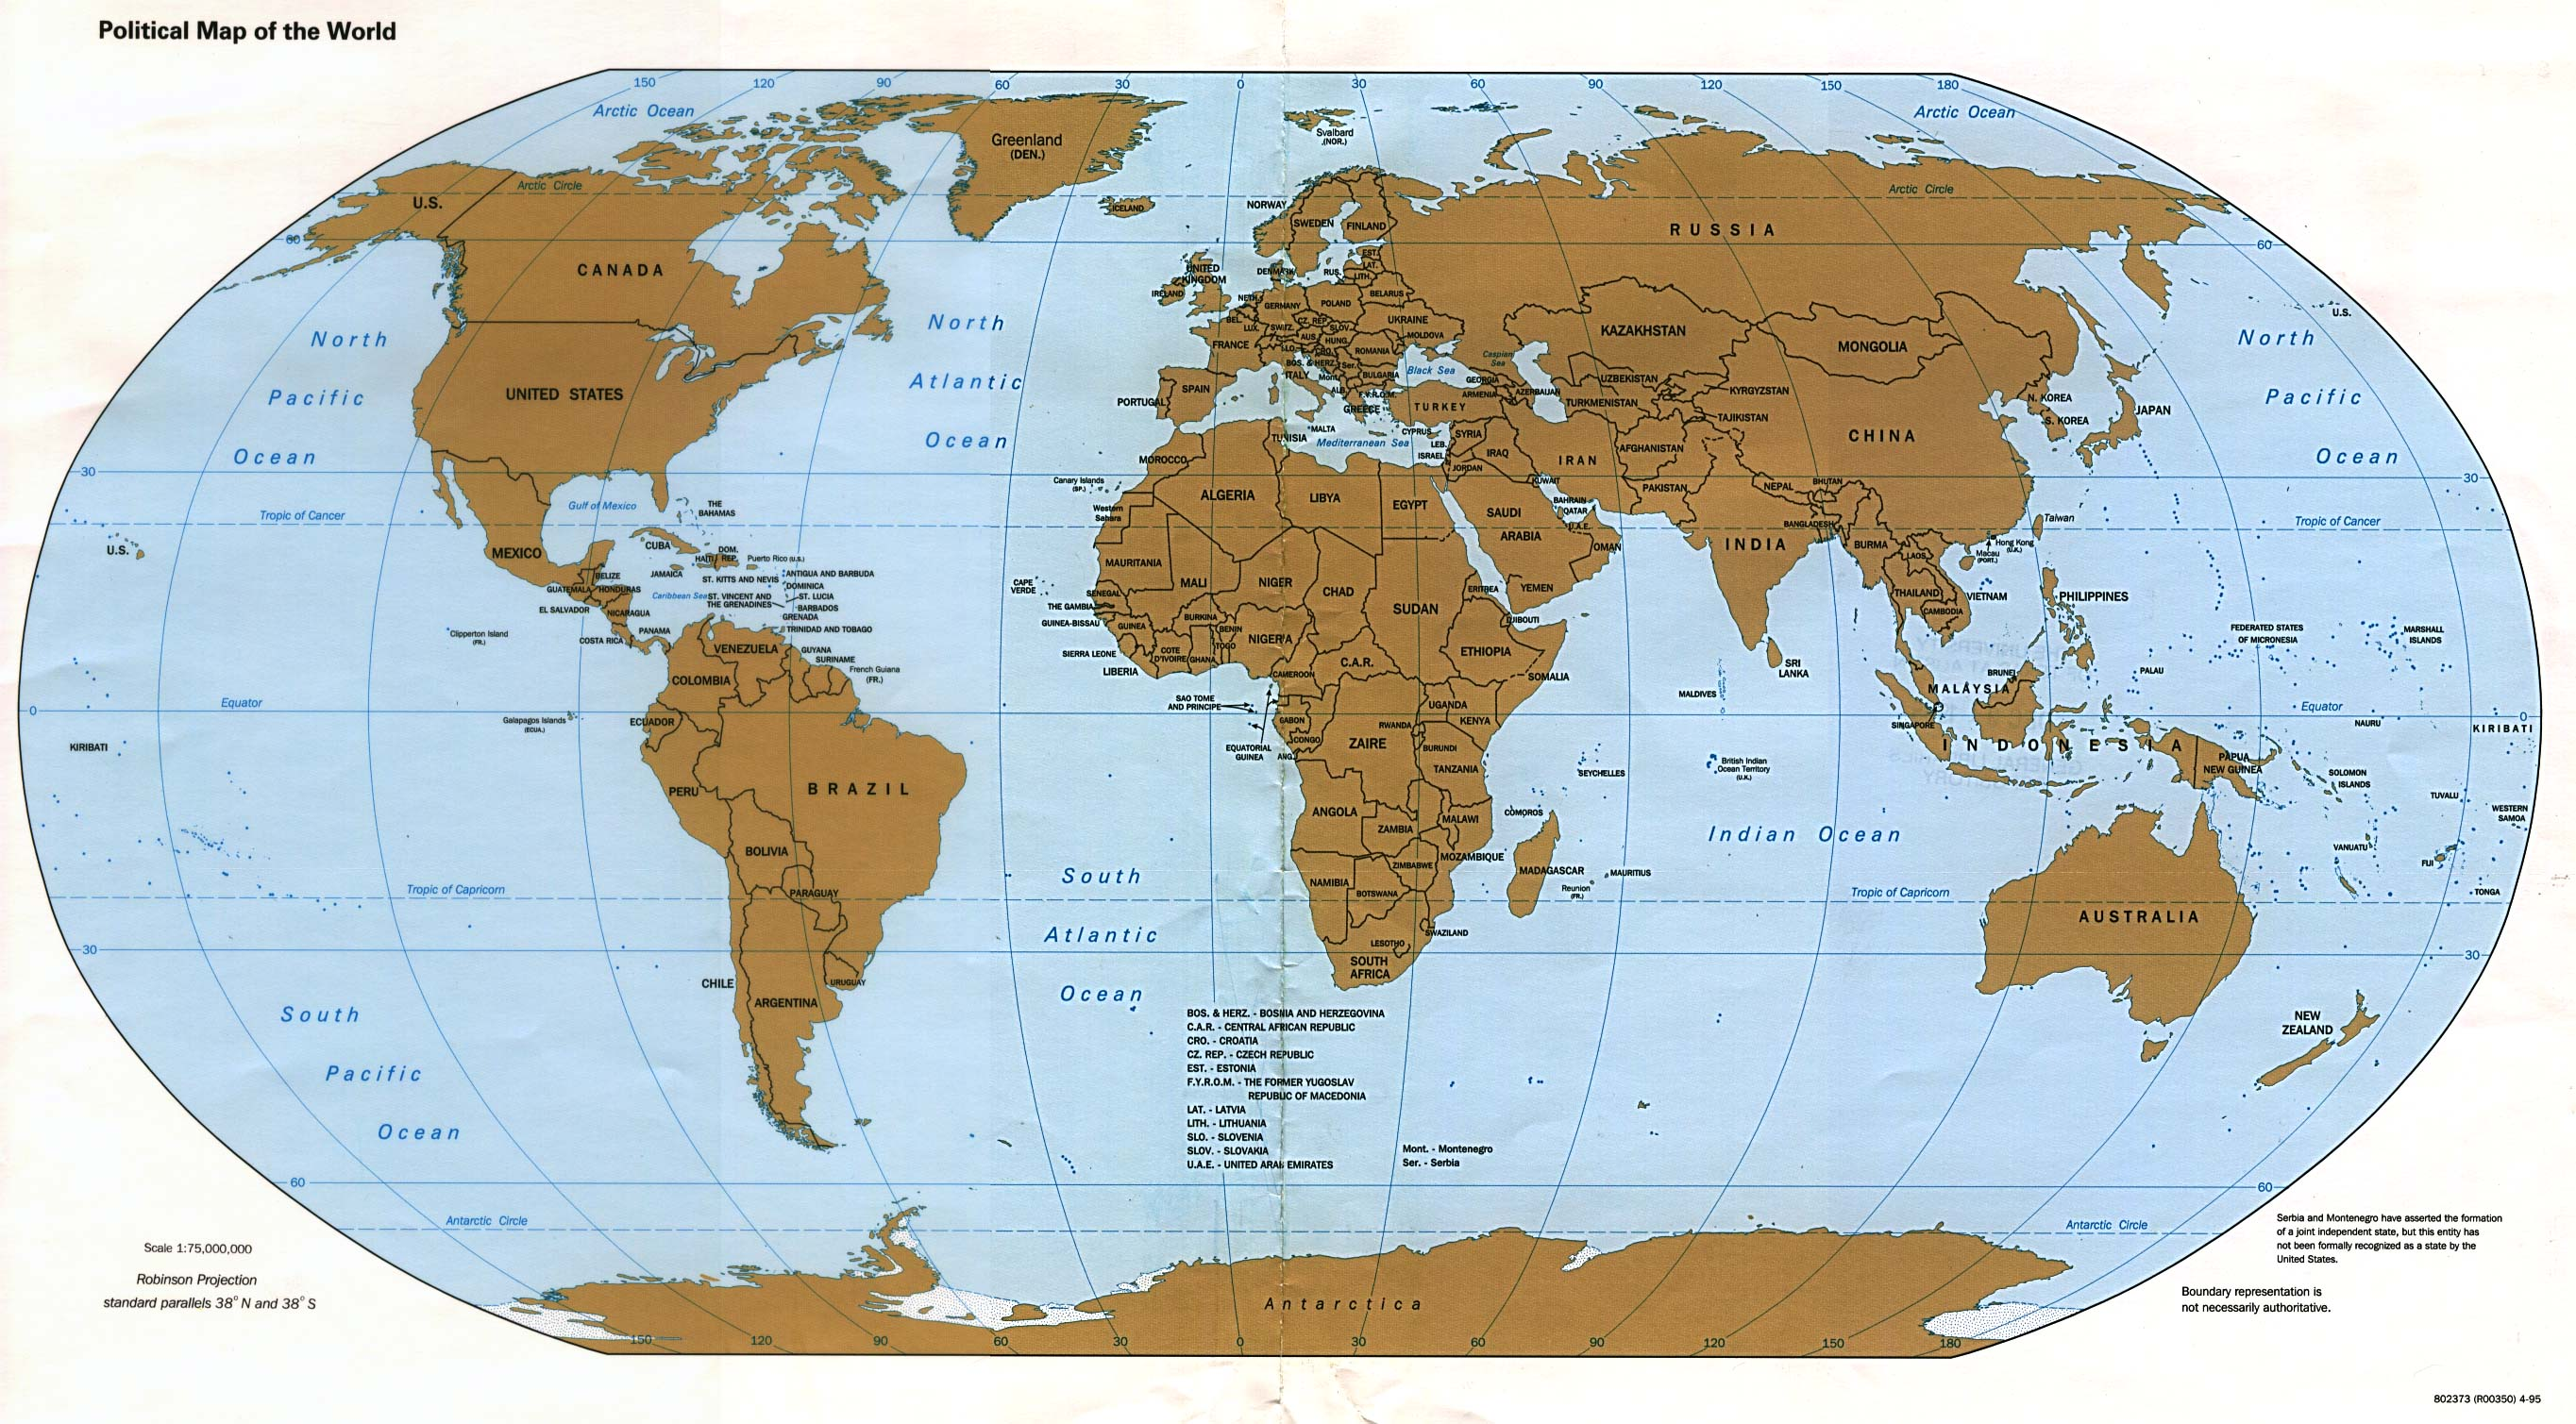 World map image picture clipart 2 world map image picture clipart gumiabroncs Choice Image